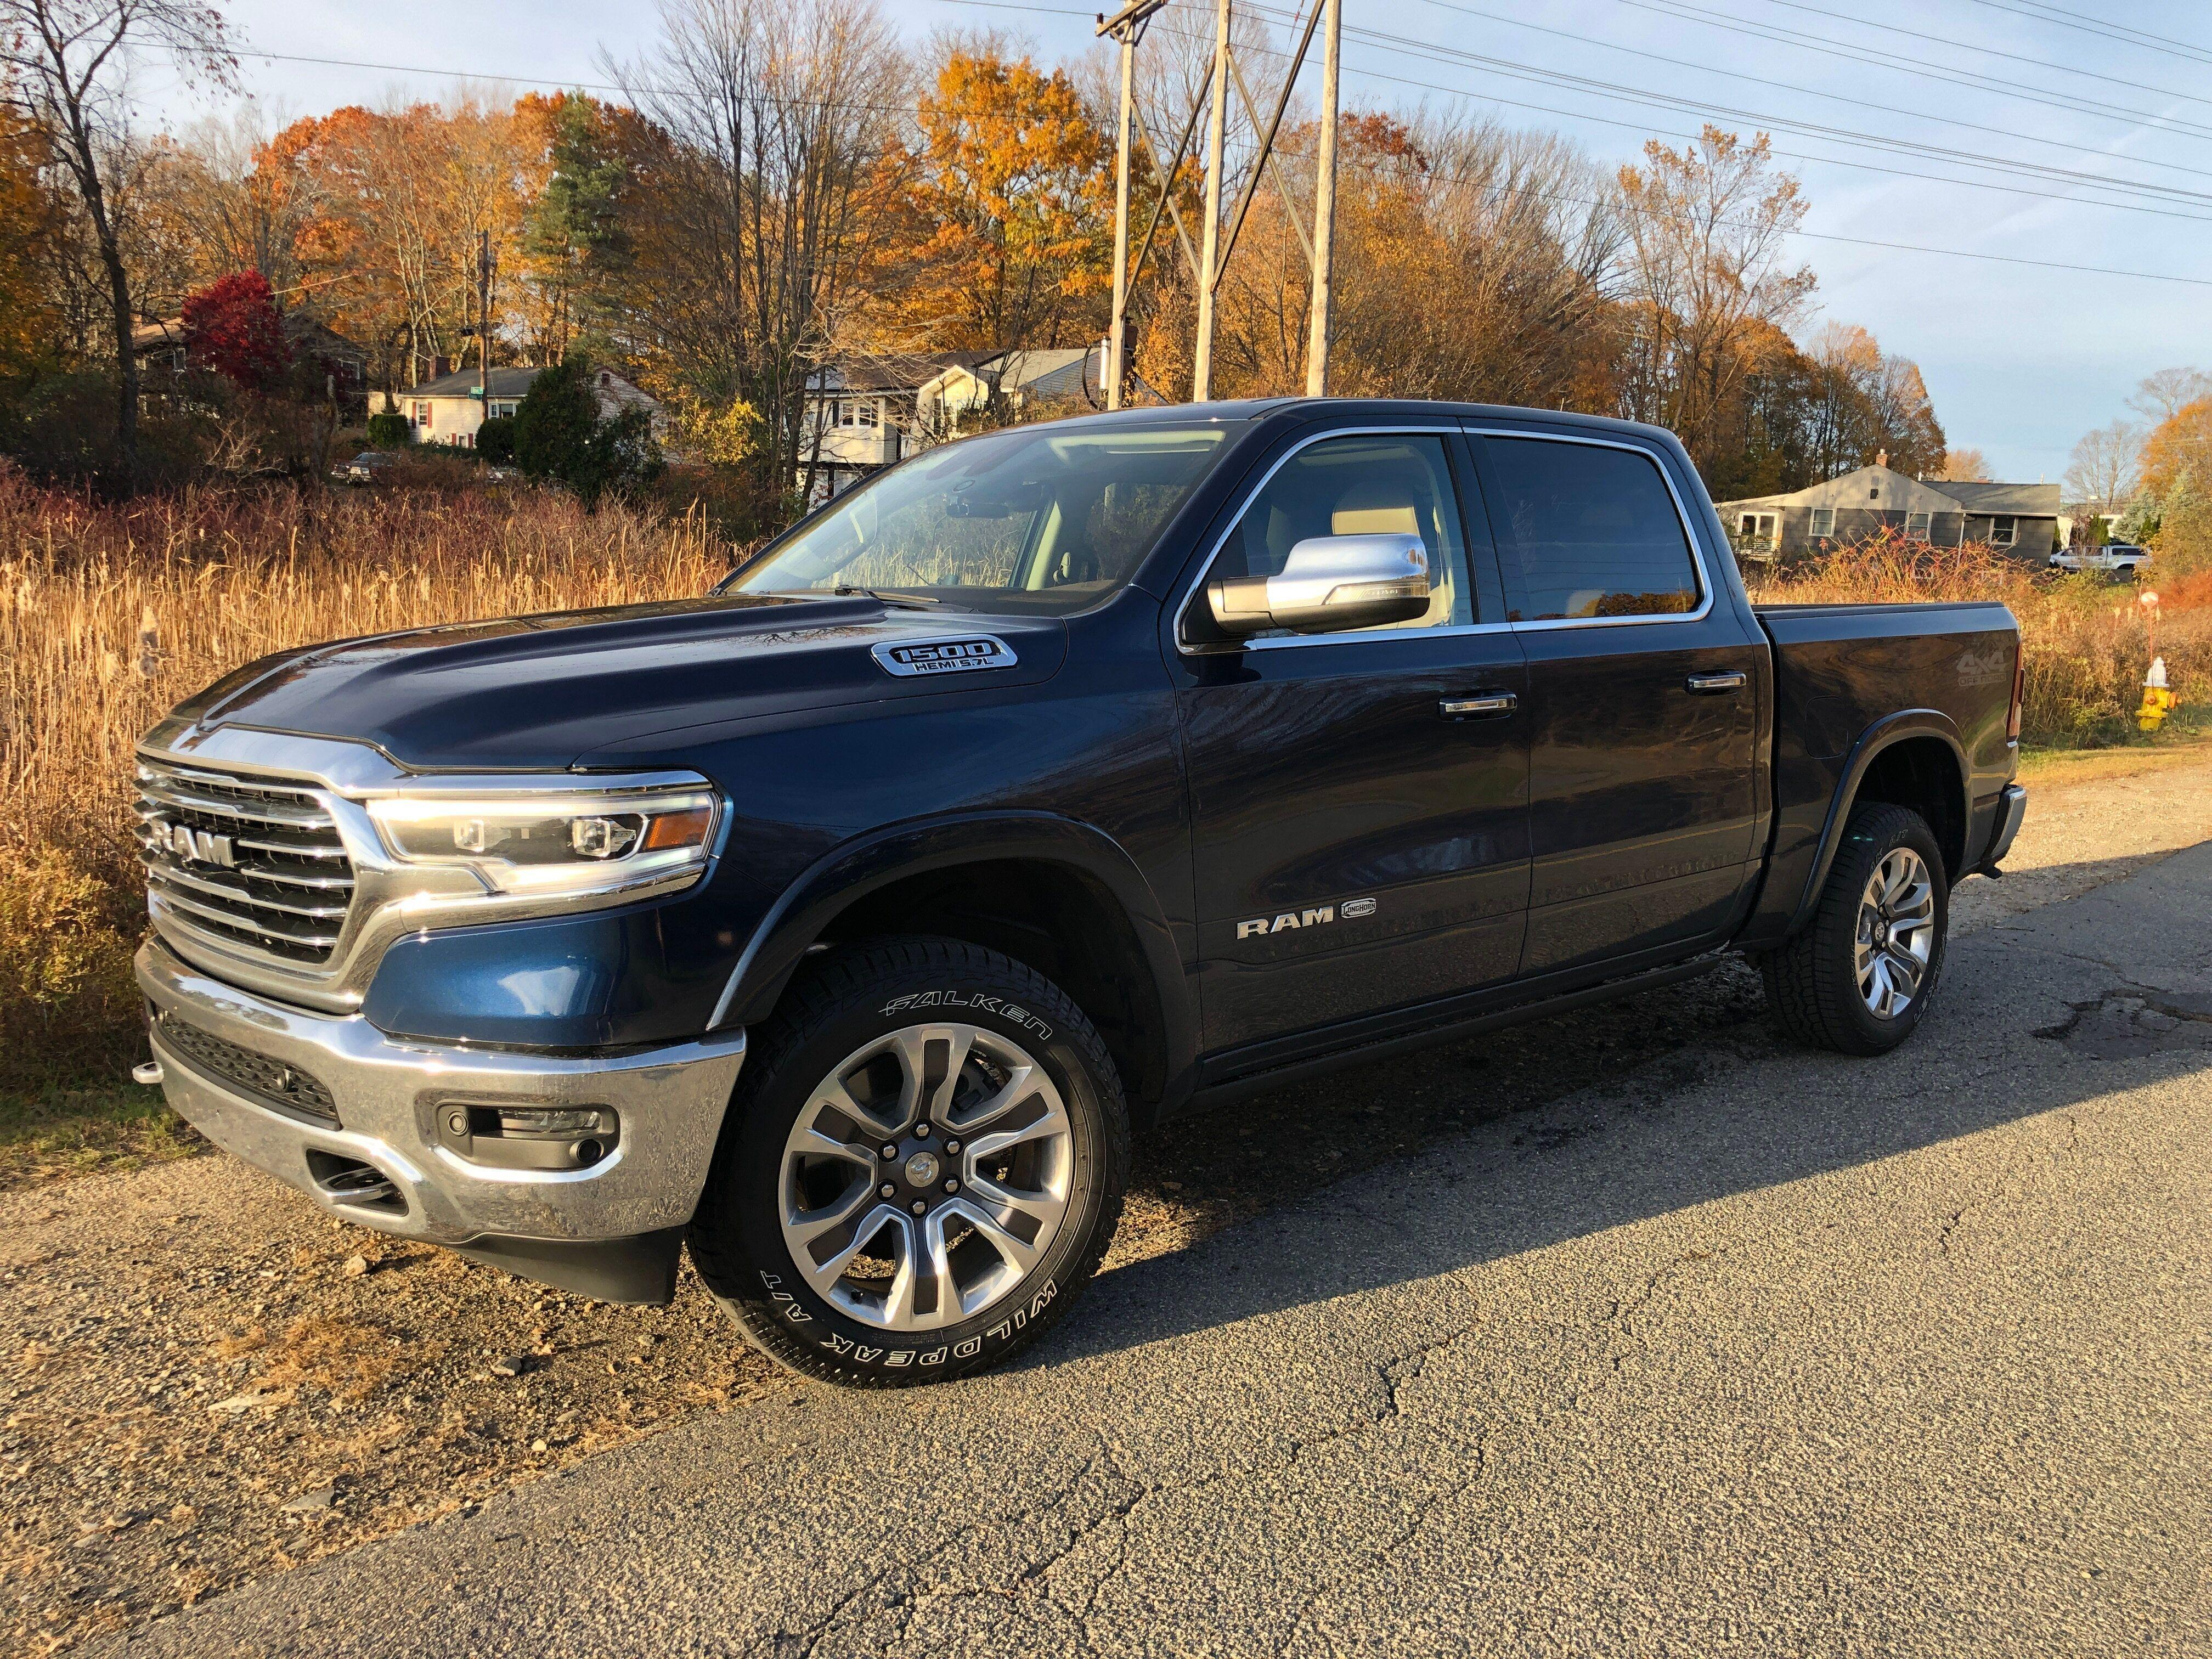 2019 Ram 1500: Move over Ford F-150, there's a new king in town